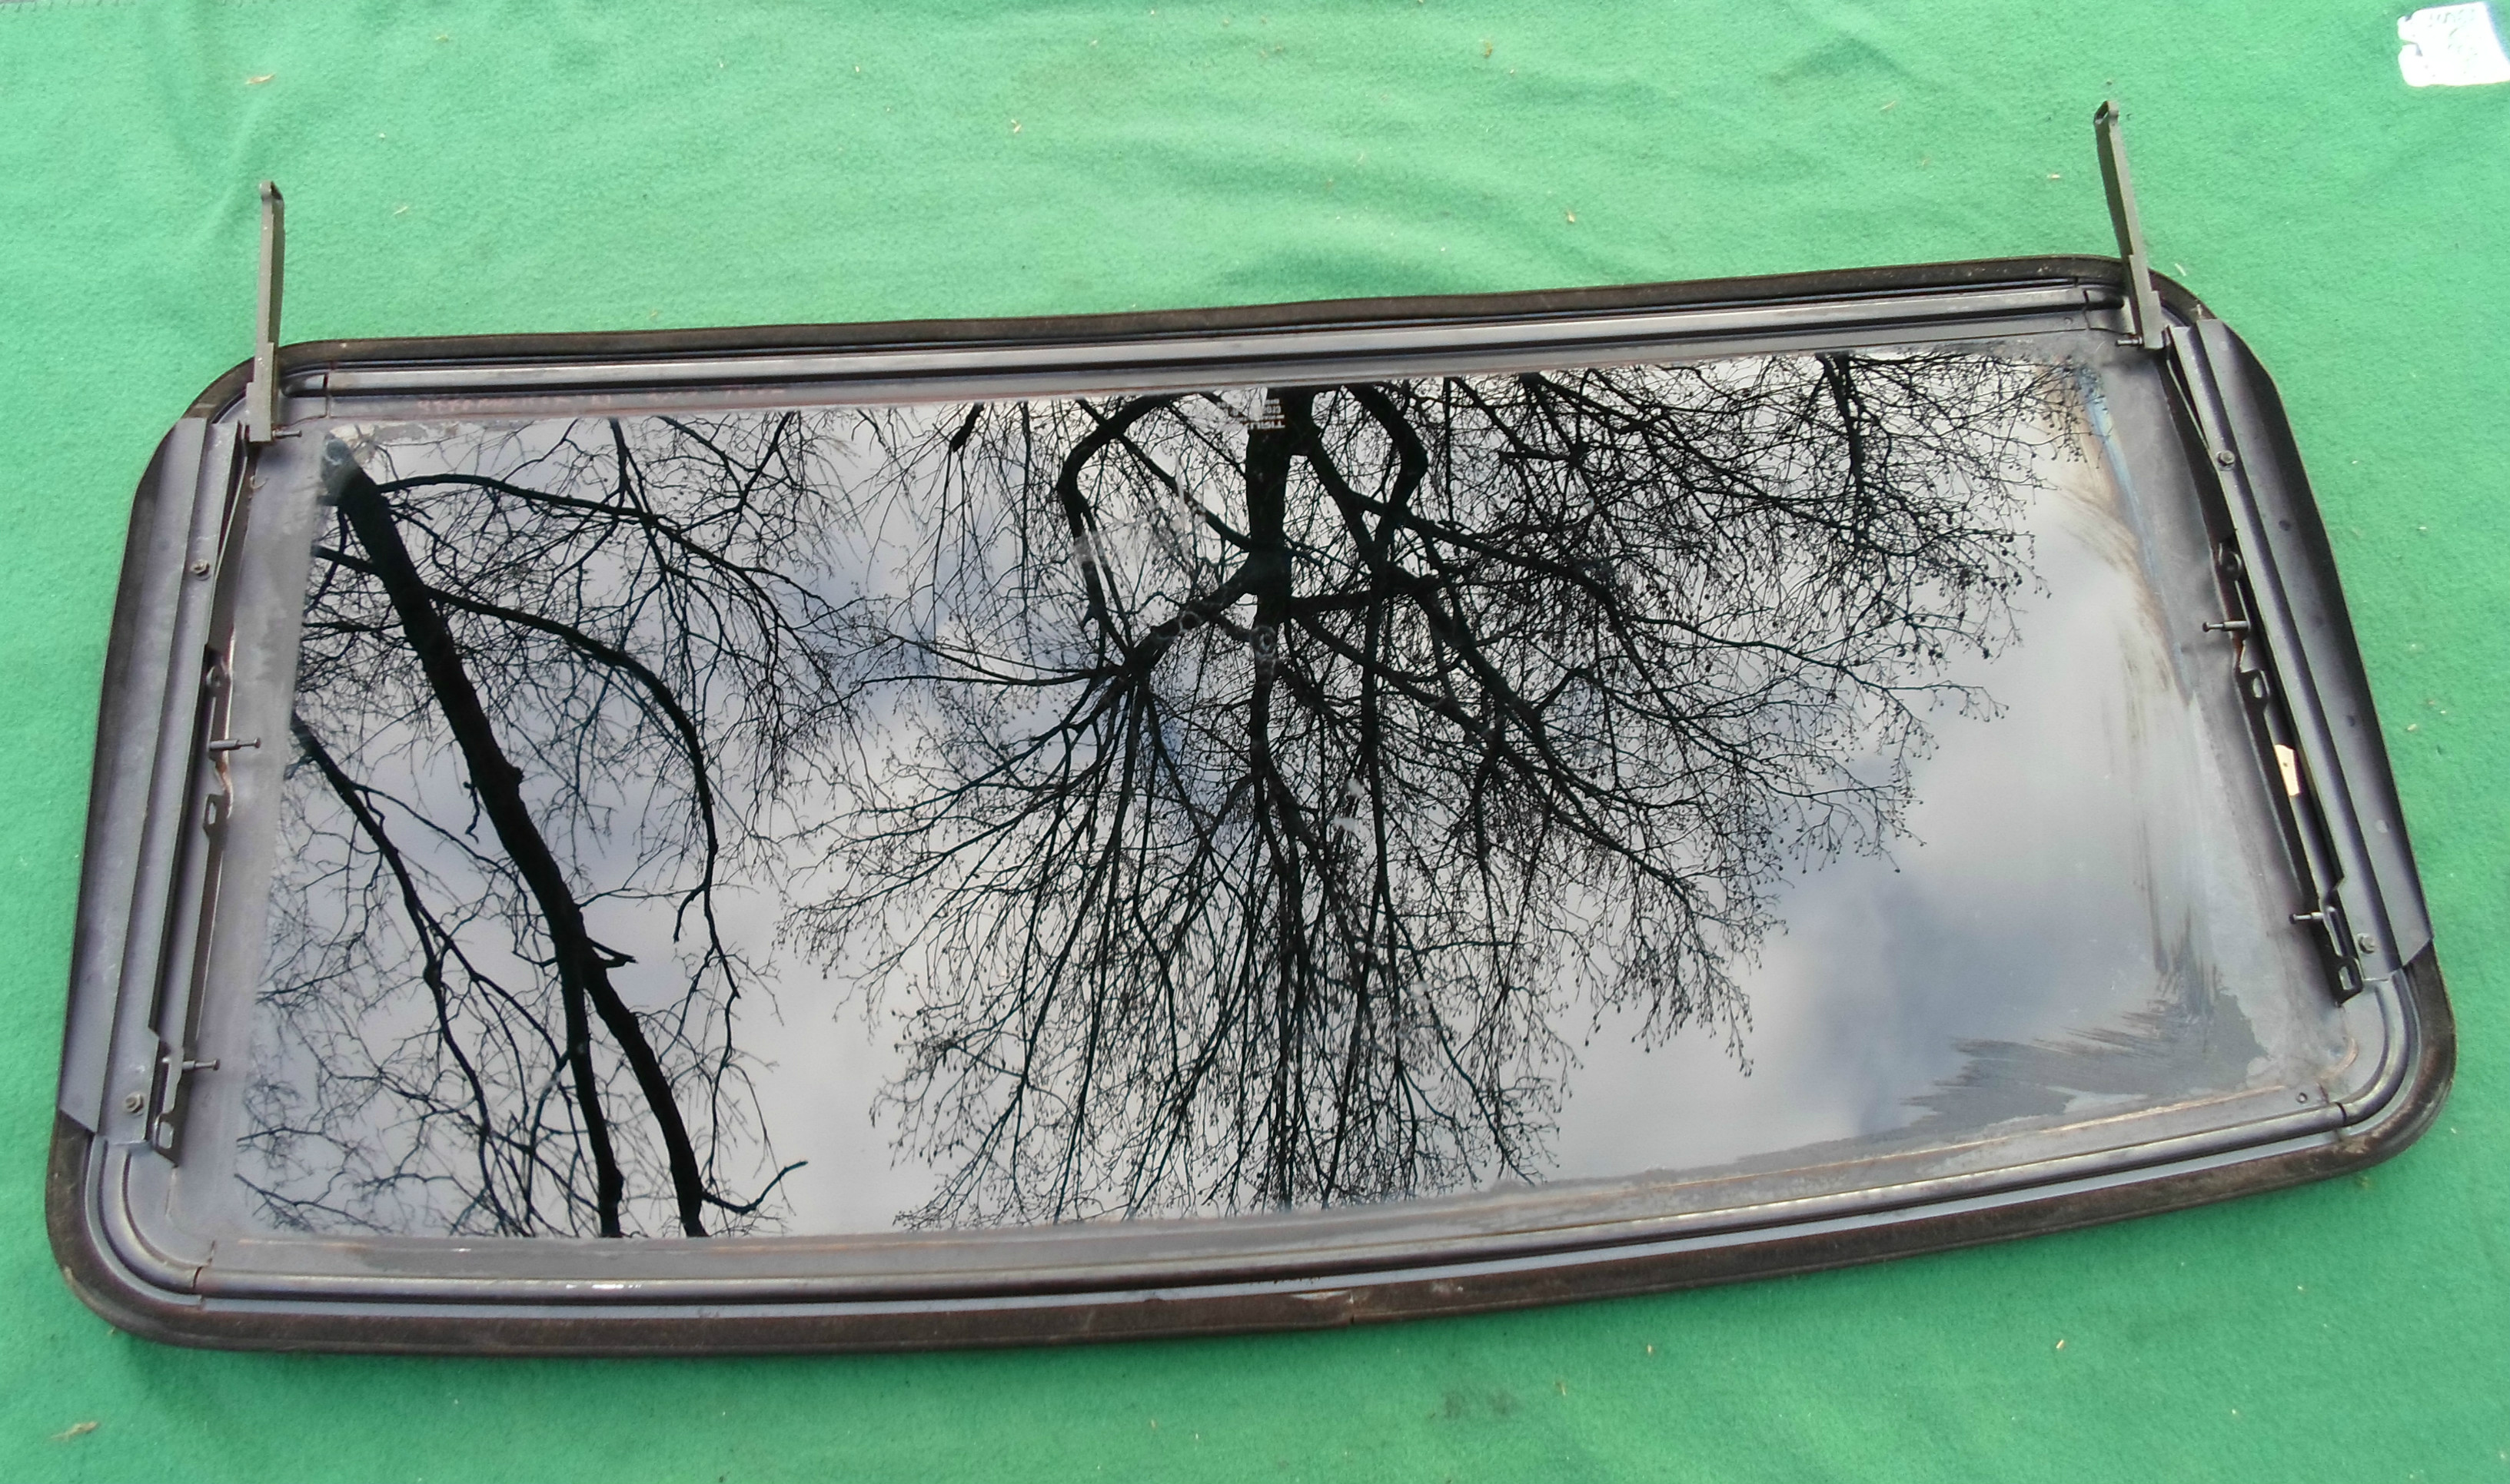 AFTERMARKET WEBASTO SOLAIRE MODEL 5300 SUNROOF GLASS PANEL FREE SHIPPING!